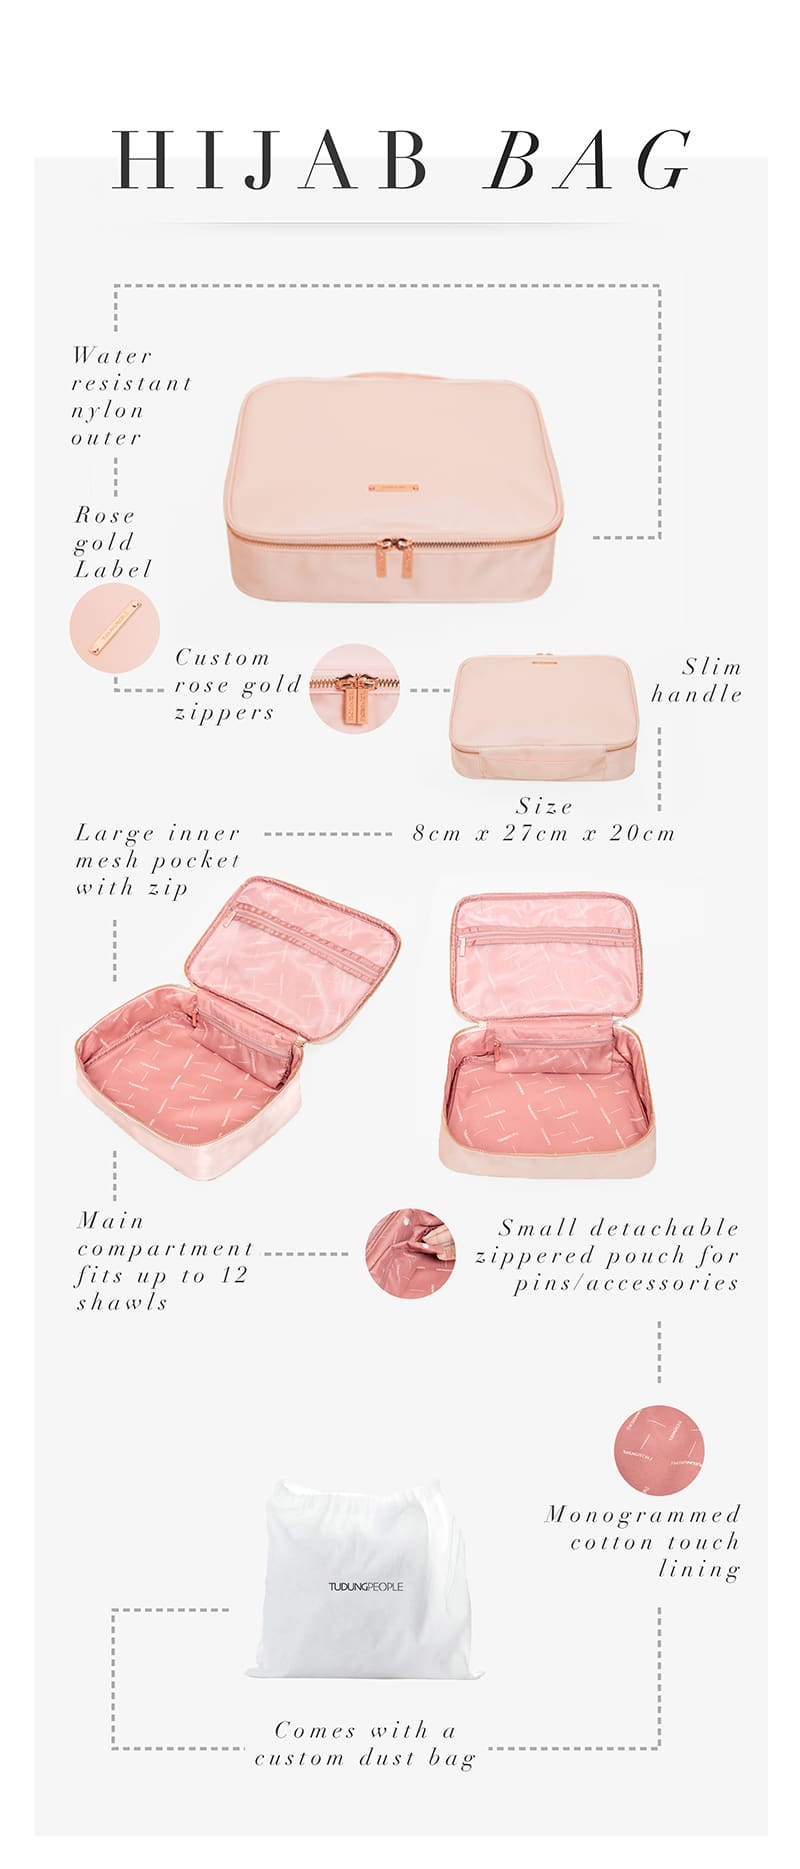 hijab bag email infographic - small